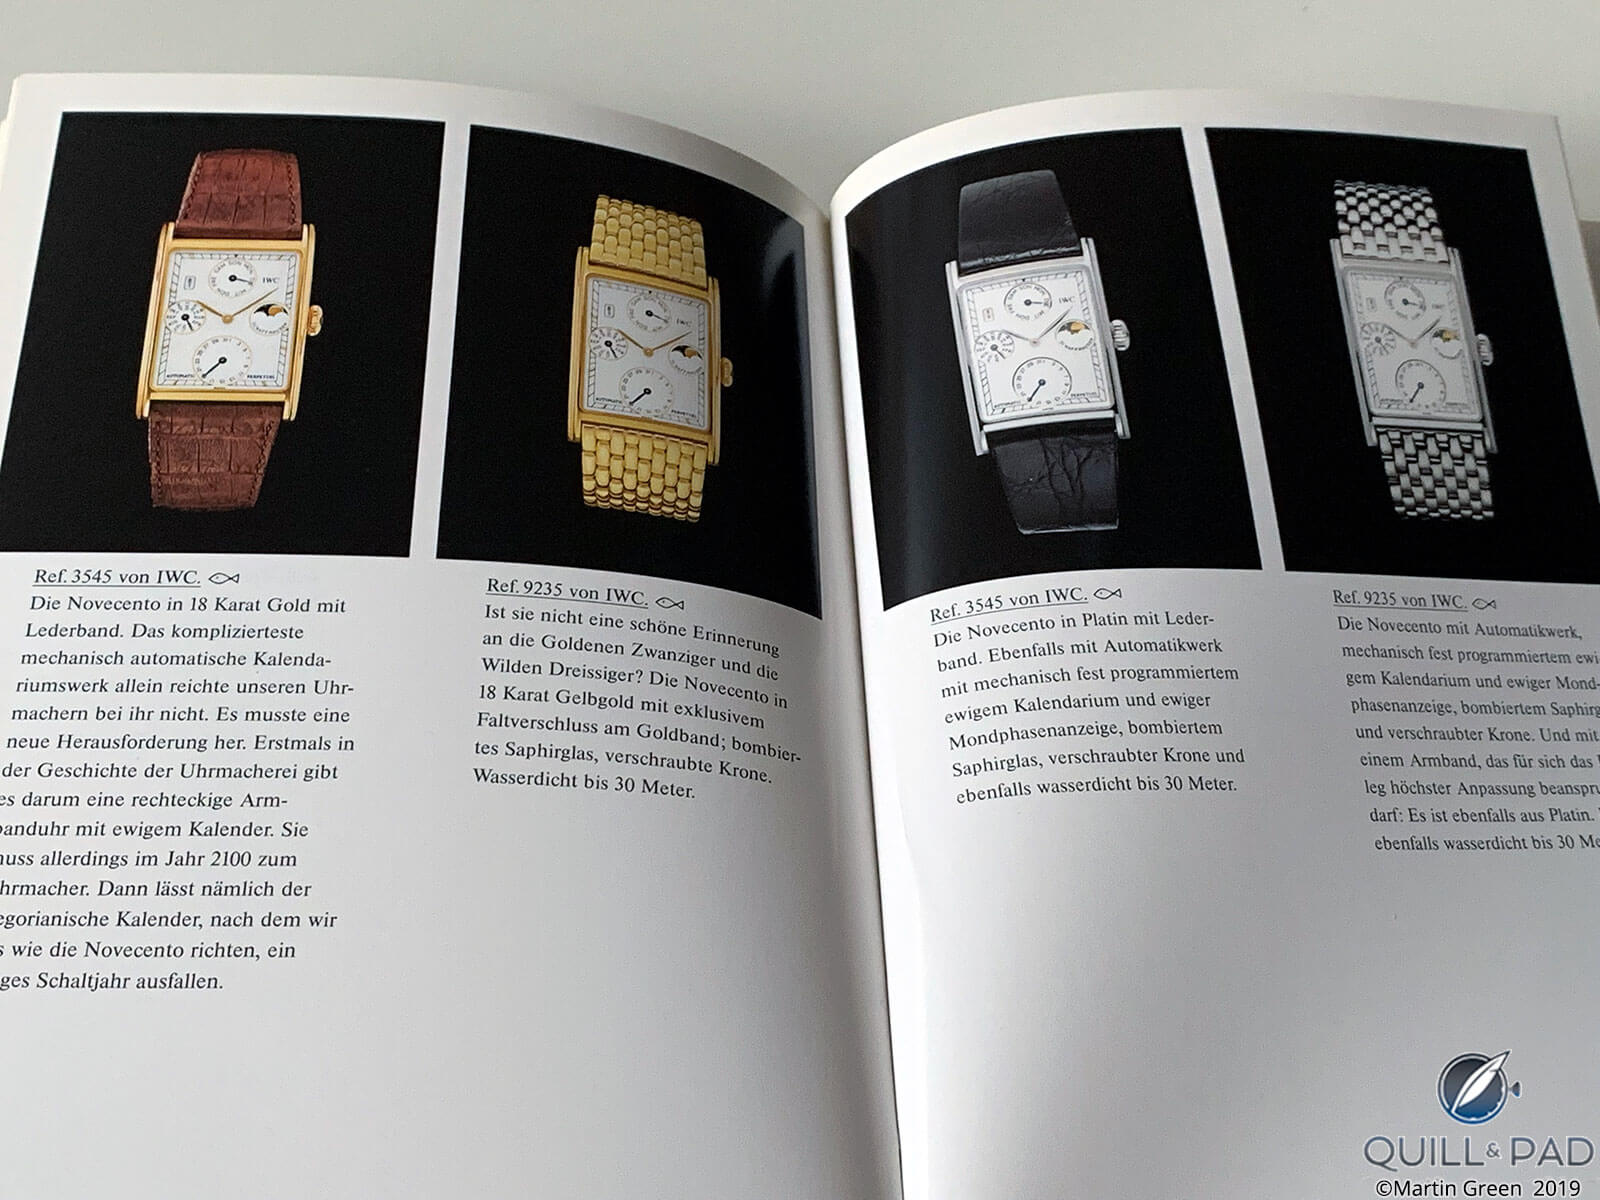 The Novecento collection in the 1989 IWC catalog